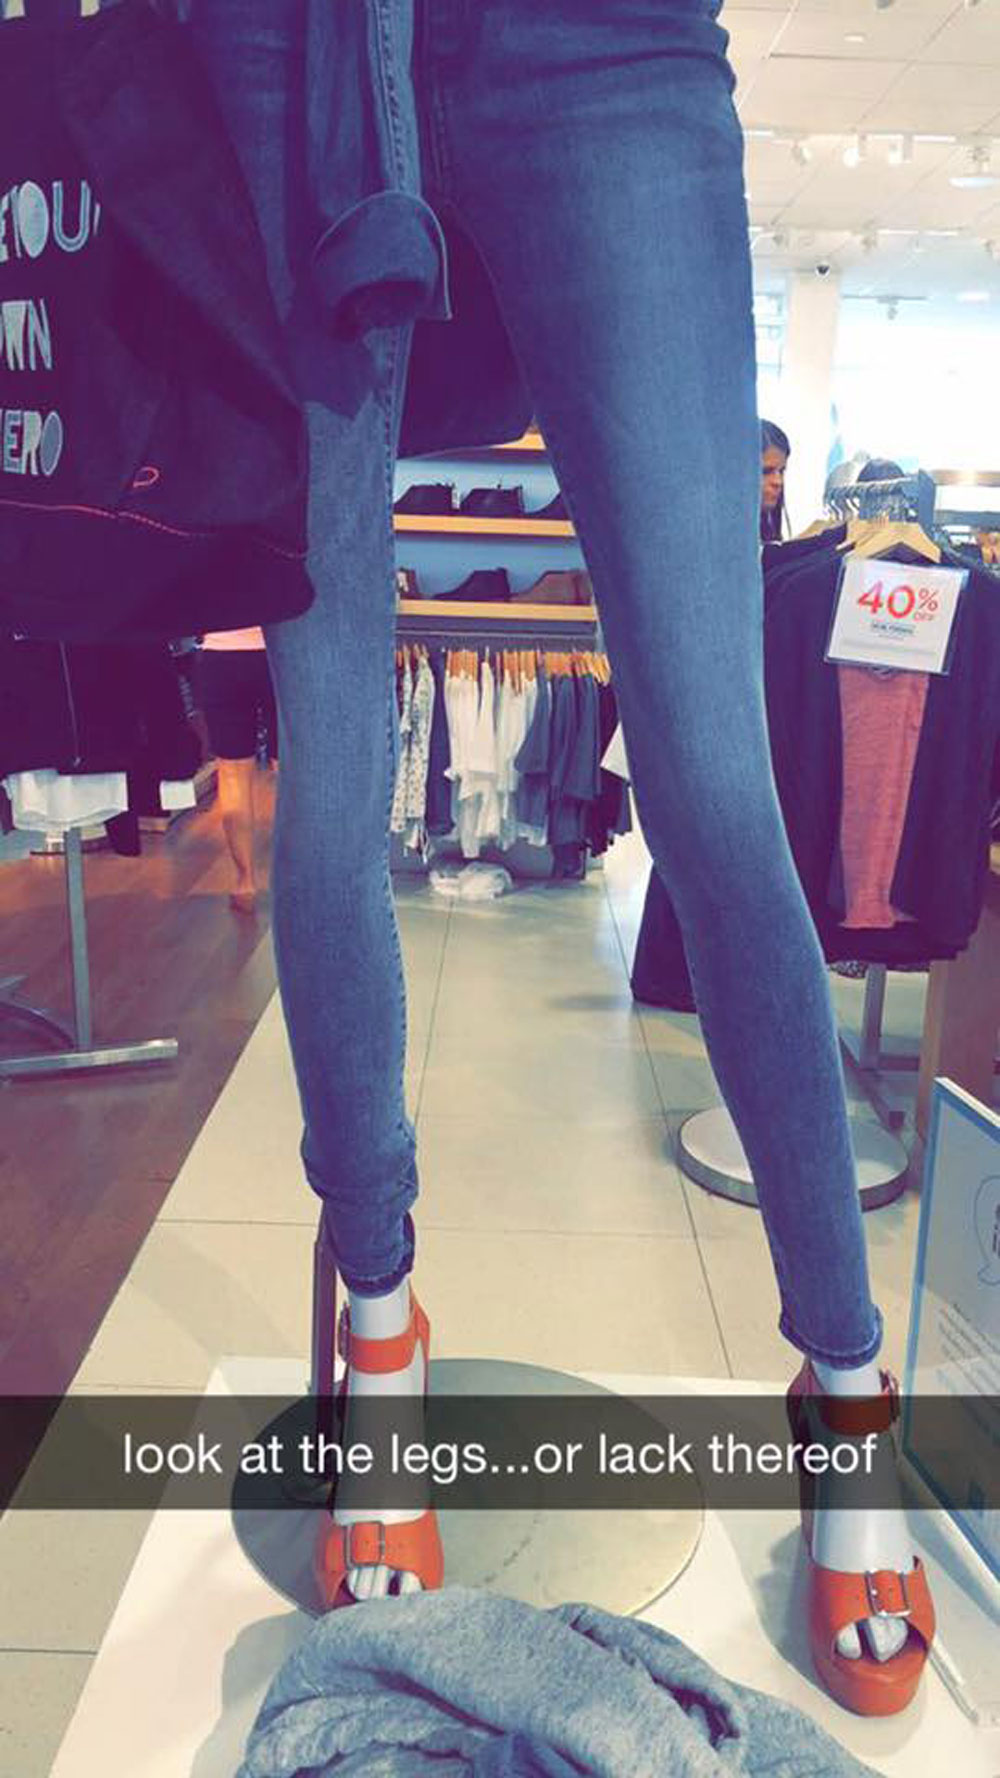 This teen is bringing much-needed attention to Gap's unrealistic mannequins